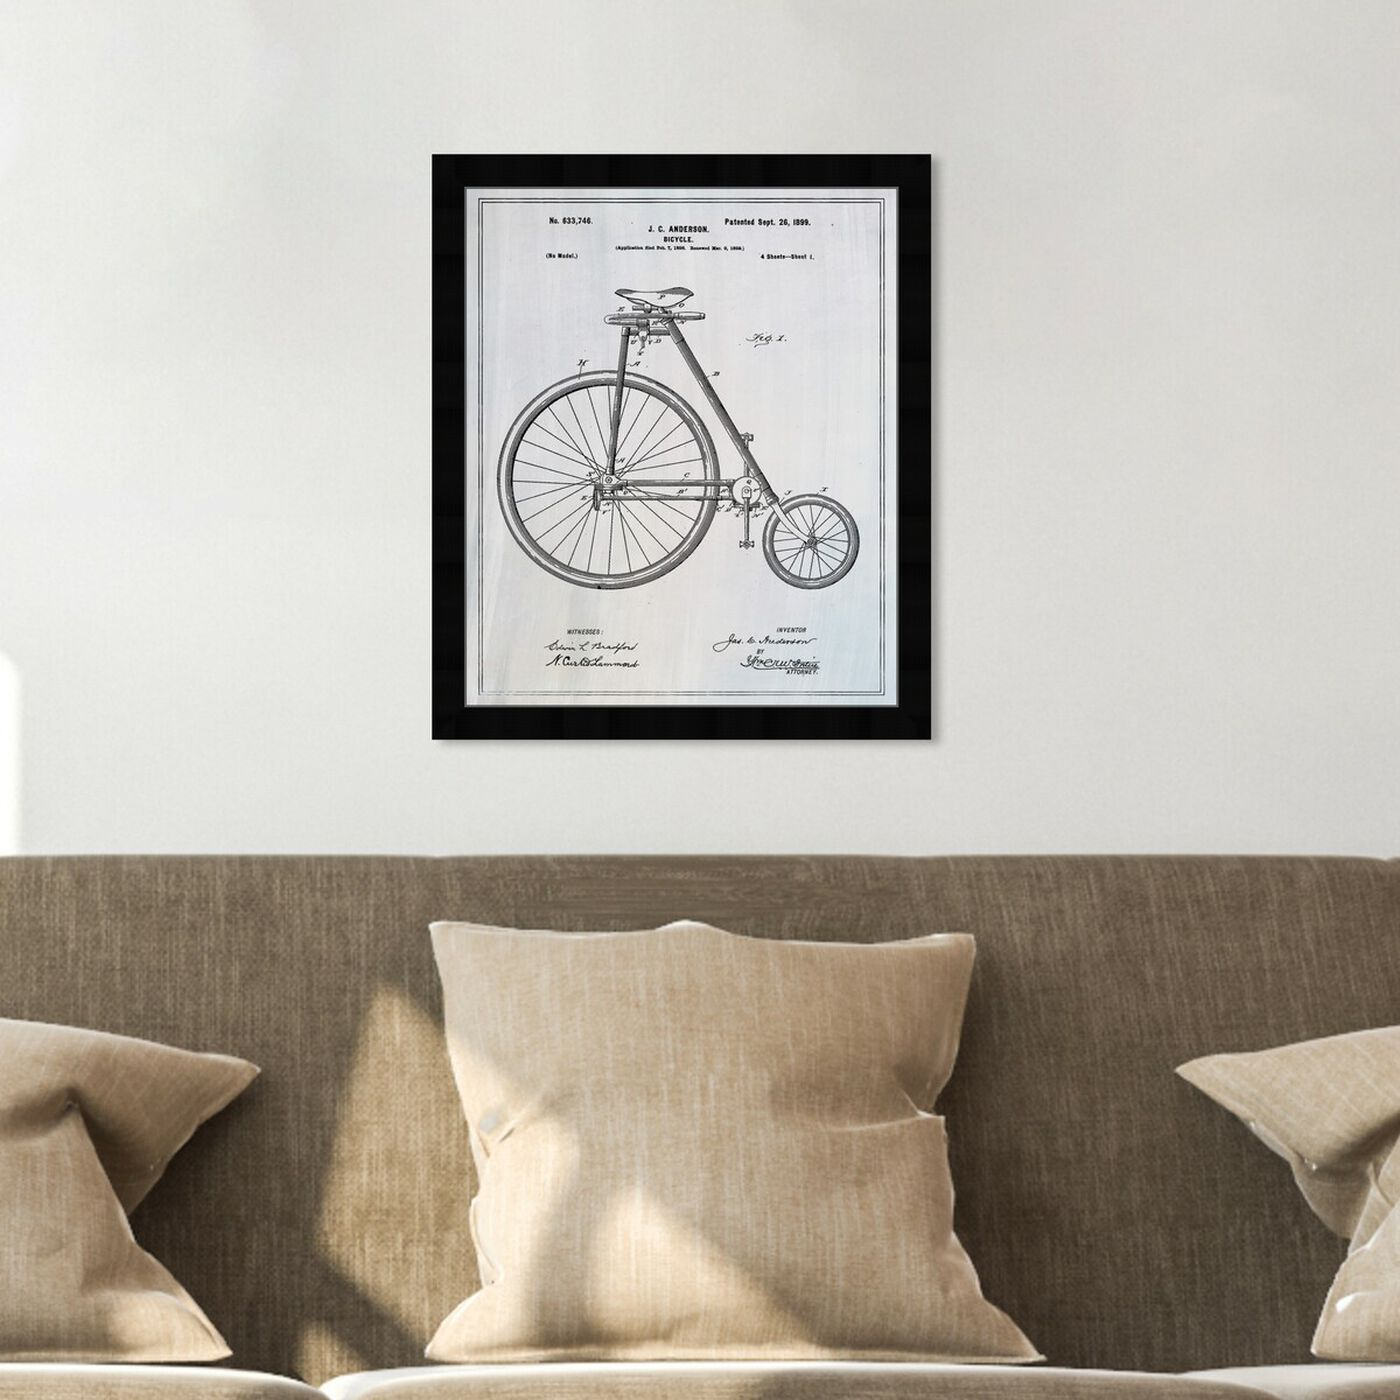 Hanging view of Bicycle 1899 featuring transportation and bicycles art.